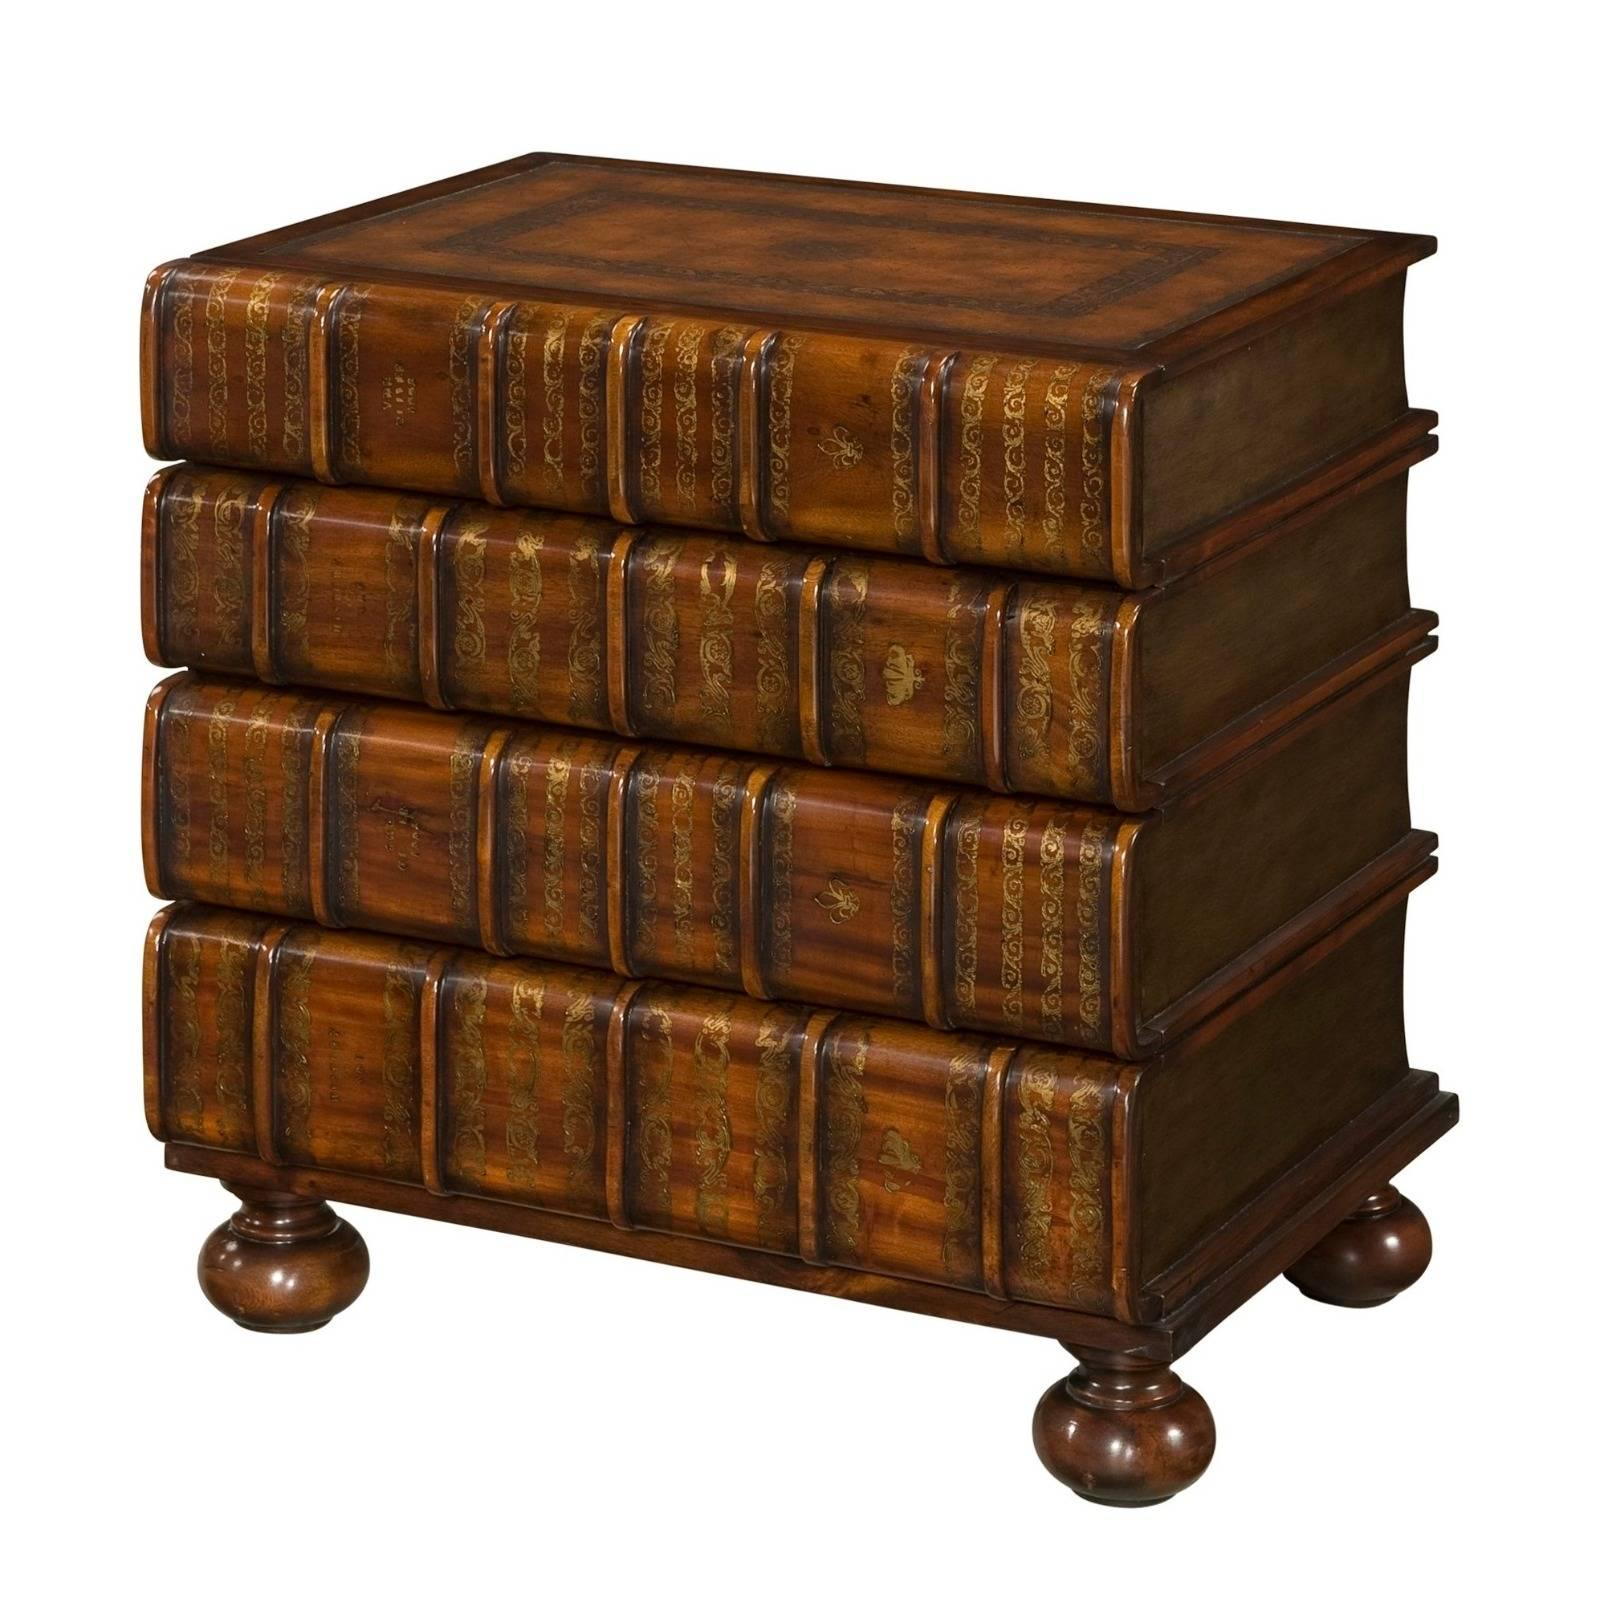 A gilt faux book chest of drawers